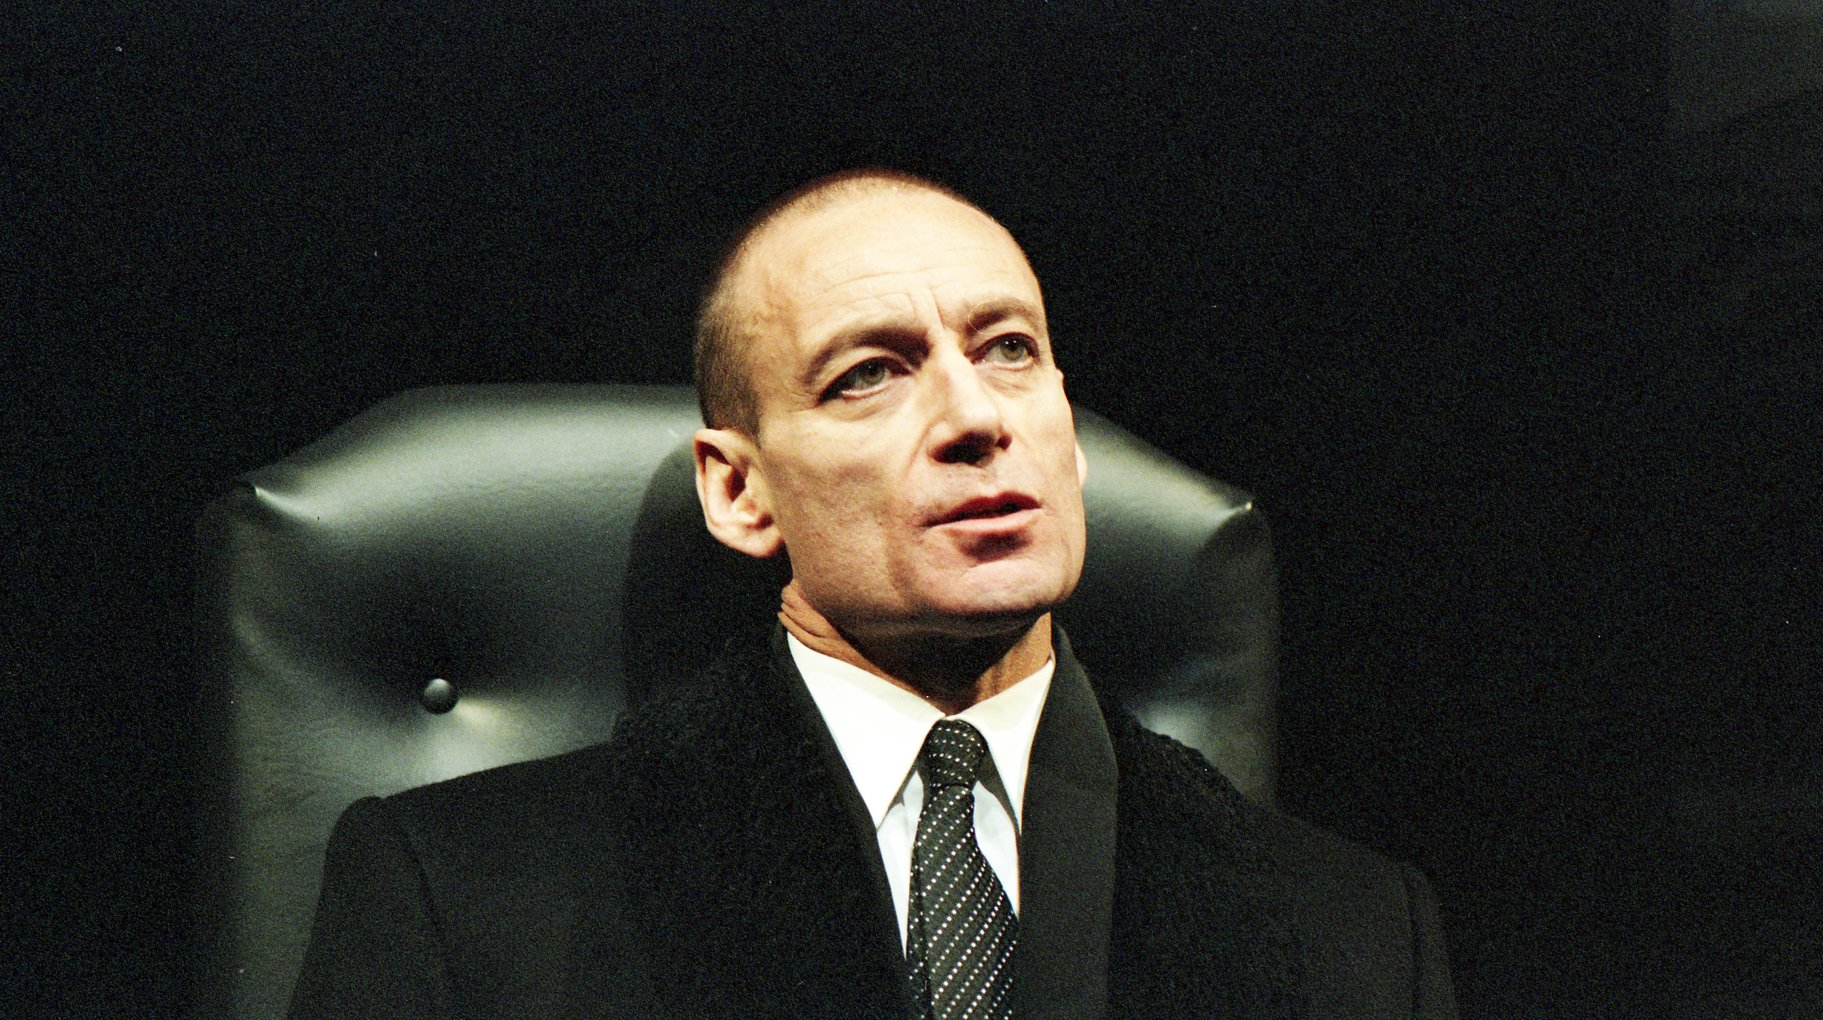 A man in a dark suit sits in a leather chair.